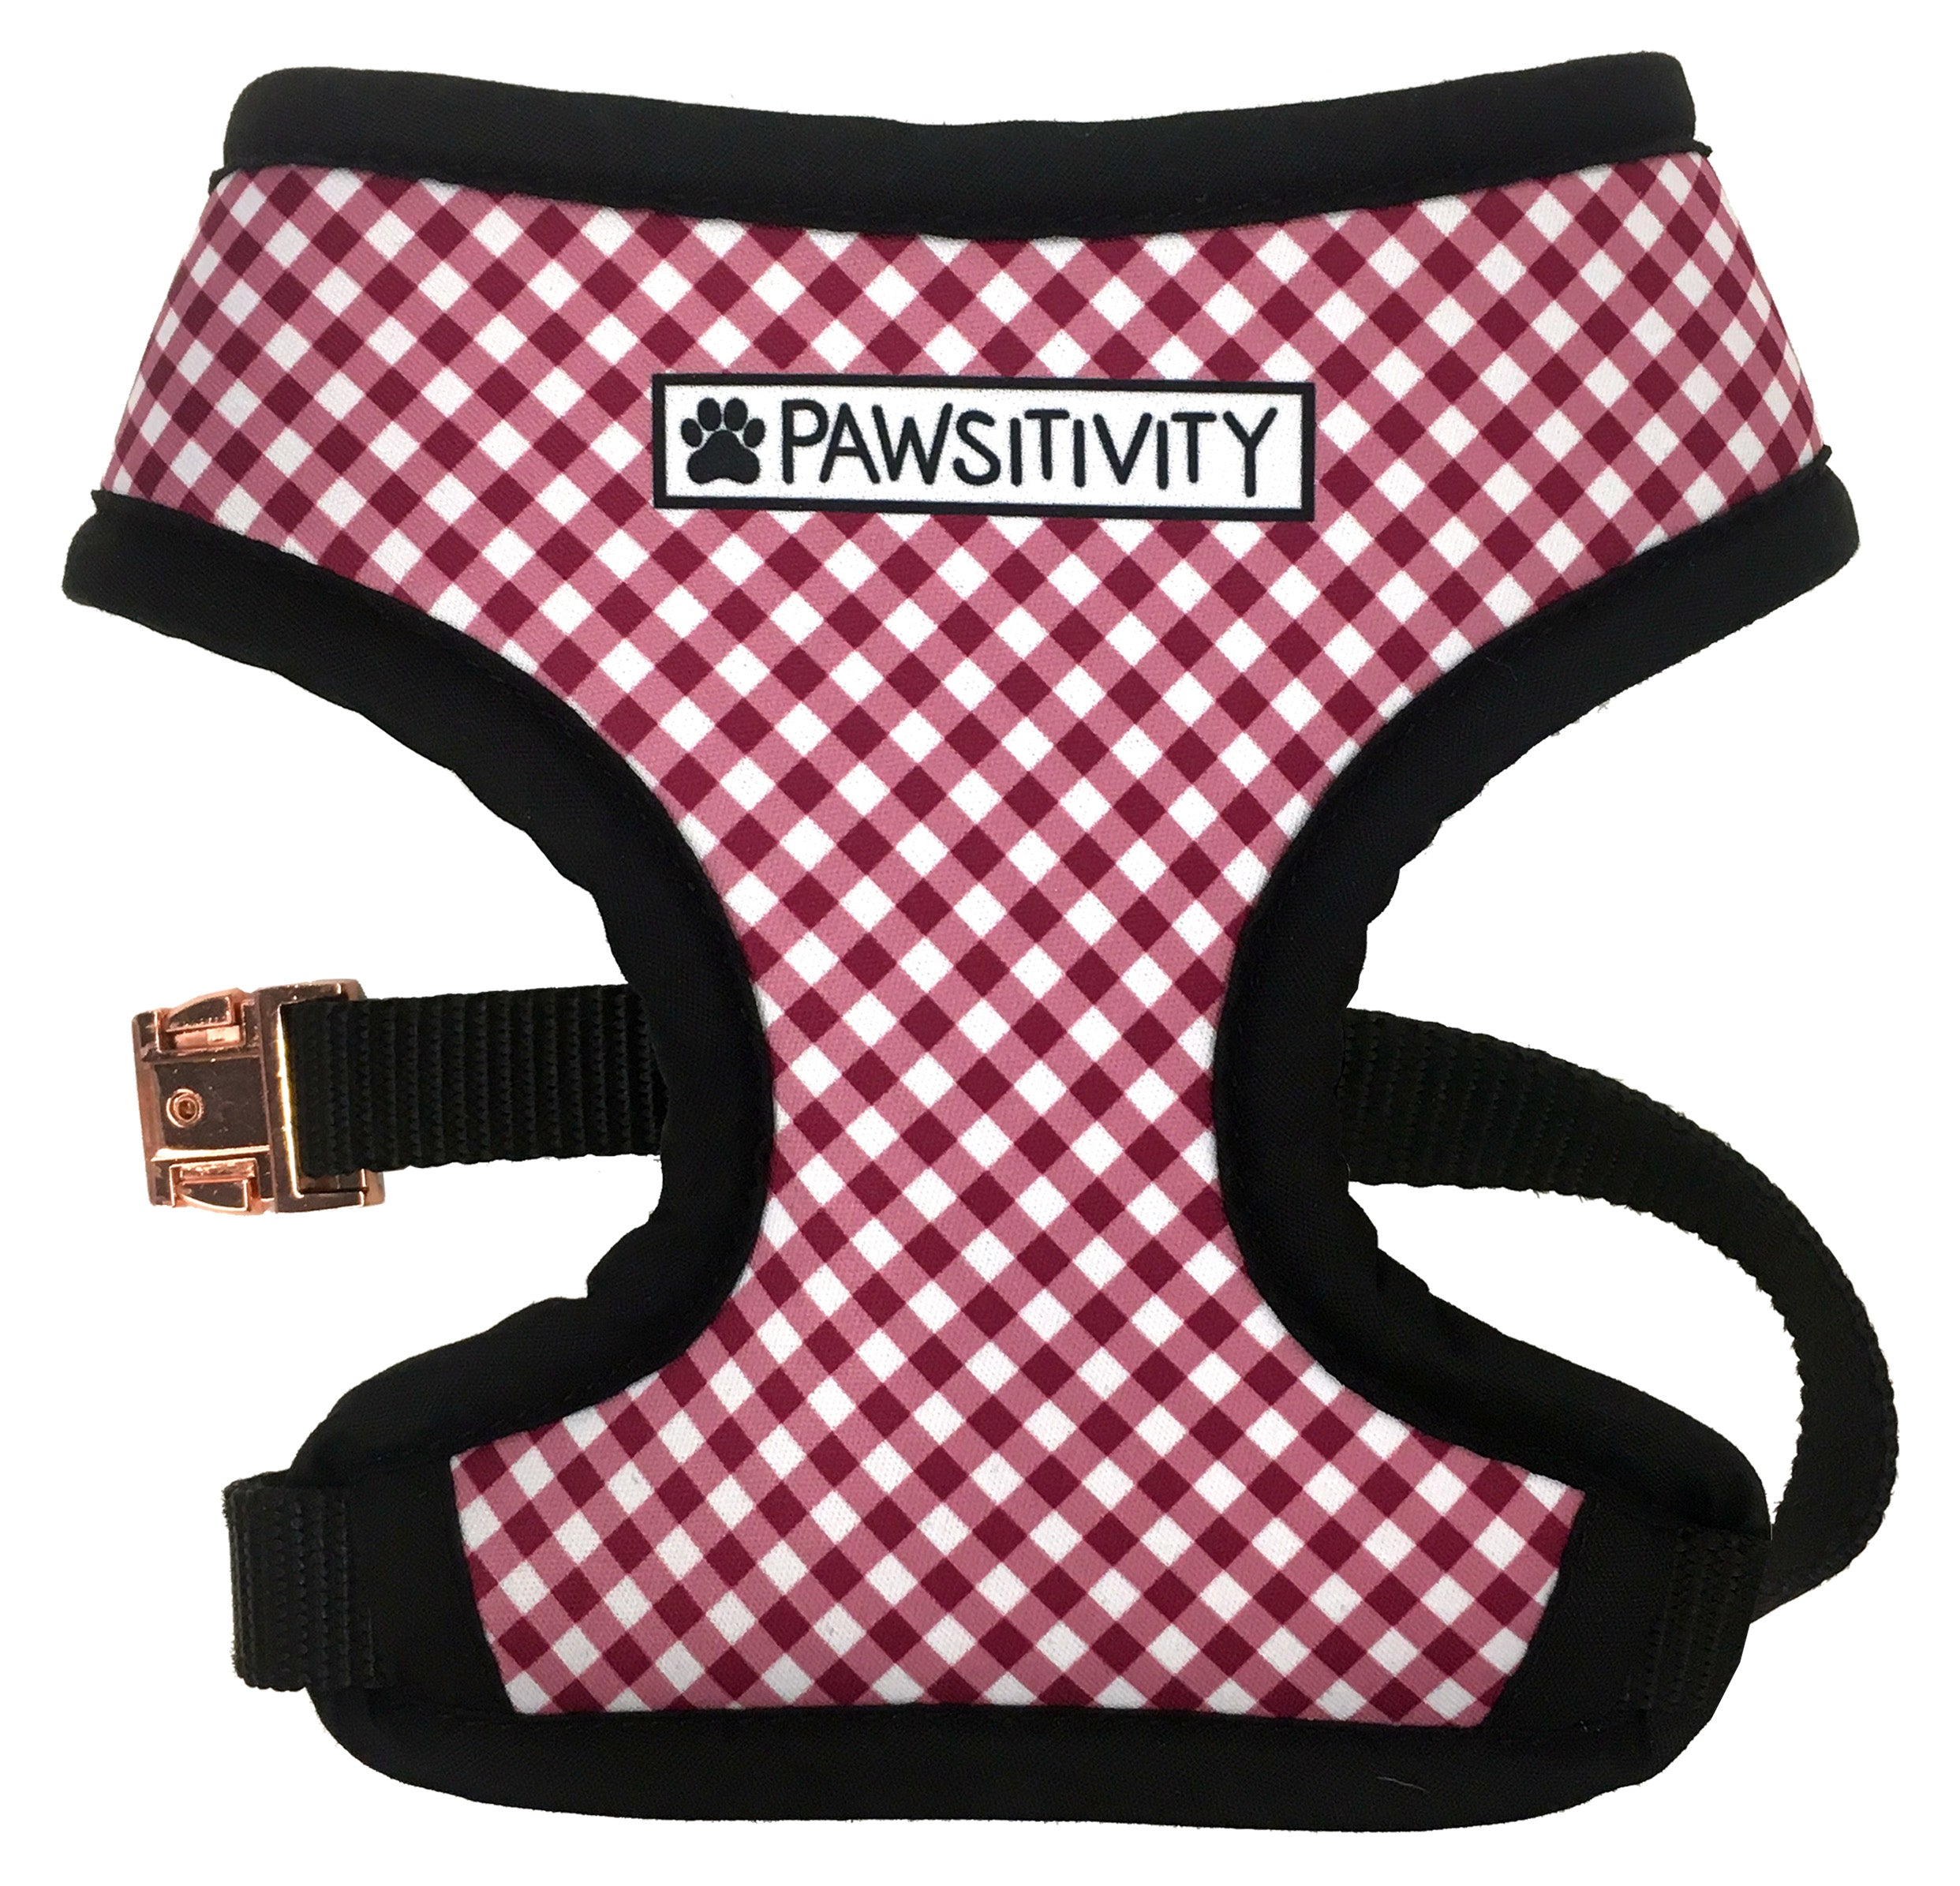 Pawsitivity Reversible Harness - Apples & Burgundy Gingham